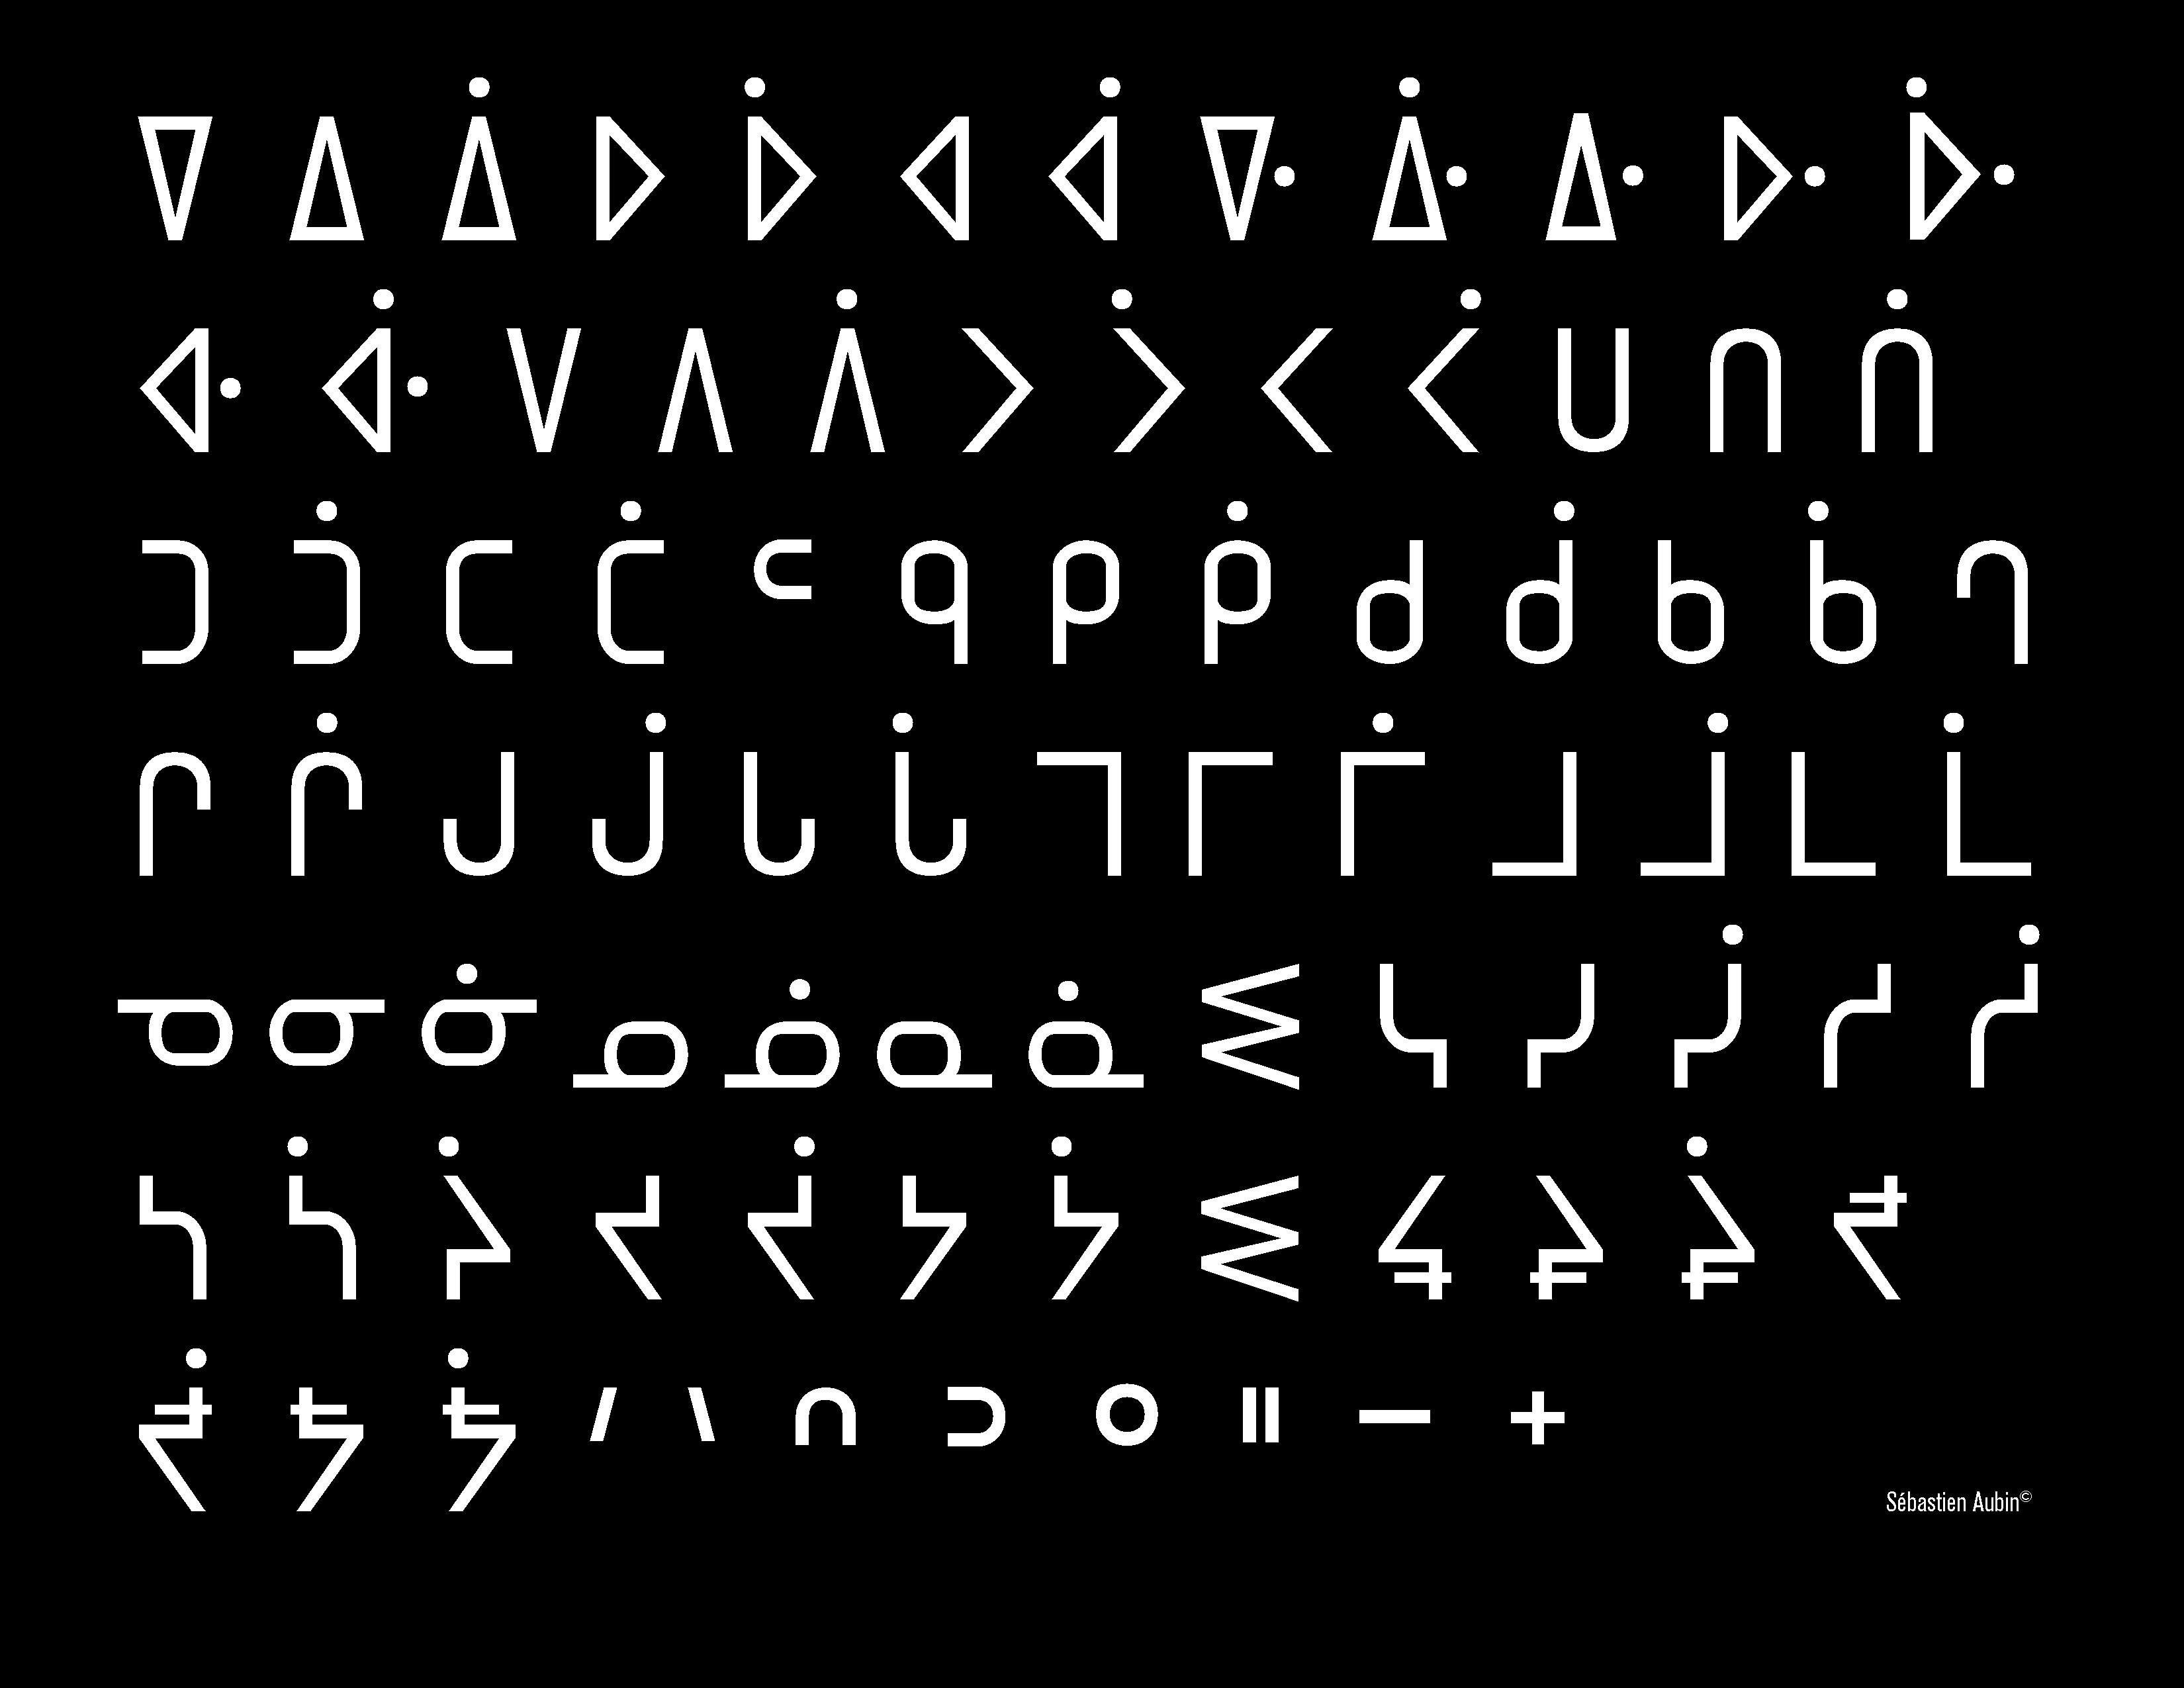 Character set for Baha, a monospaced Cree typeface designed by Sébastien Aubin.